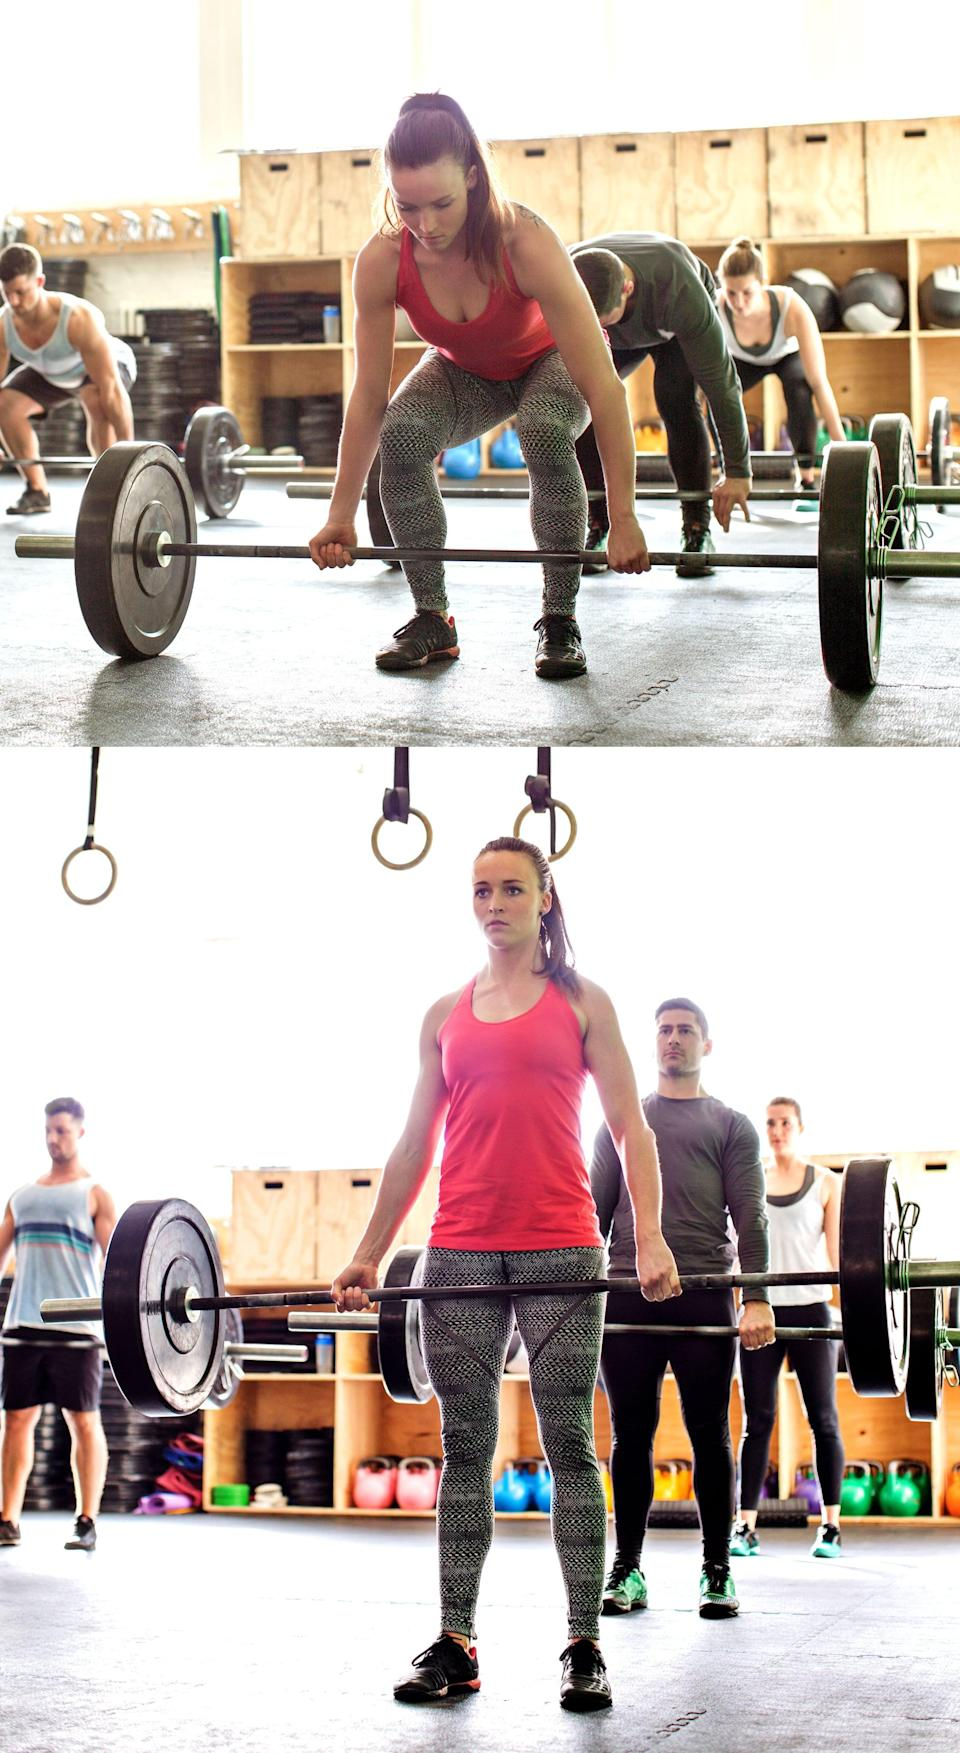 """<p>""""A fantastic, dynamic movement; though it is simple, a deadlift engages your whole body, including all major muscle groups: glutes, hamstrings, quads, and the entire chain of back muscles,"""" said ACE-certified trainer Christian Koshaba, owner of <a href=""""https://www.three60fit.com/"""" class=""""link rapid-noclick-resp"""" rel=""""nofollow noopener"""" target=""""_blank"""" data-ylk=""""slk:Three60Fit"""">Three60Fit</a>. Since the deadlift is a full-body movement, Christian said """"you're inducing a lot more of a hormonal reaction as well as blood pumping to those specific muscles, so you're actually inducing a more escalated heart rate, which leads to increased fat loss.""""</p> <p>If you don't have access to a barbell, you can do <a href=""""https://www.popsugar.com/fitness/photo-gallery/45747578/image/45787769/Dumbbell-Deadlift"""" class=""""link rapid-noclick-resp"""" rel=""""nofollow noopener"""" target=""""_blank"""" data-ylk=""""slk:deadlifts with dumbbells"""">deadlifts with dumbbells</a> or <a href=""""https://www.popsugar.com/fitness/How-Do-Kettlebell-Deadlift-46219715"""" class=""""link rapid-noclick-resp"""" rel=""""nofollow noopener"""" target=""""_blank"""" data-ylk=""""slk:holding a kettlebell"""">holding a kettlebell</a>. Whatever weight you use, focus on form first with light weights, then gradually increase the weight as you're ready.</p> <ul> <li>Stand with your feet hip-distance apart.</li> <li>Push your butt back as you bend your knees, grasping the barbell with your hands just outside the hips, with the shoulders slightly in front of the bar. Have both palms facing you, or if it feels more comfortable (or you're lifting very heavy), turn one palm facing out. Keep your back straight, not curved or arched. Your chest should be parallel with the floor.</li> <li>Stand up, raising the hips and shoulders at the same time, lifting the barbell off the floor so the bar moves over the middle of both feet.</li> <li>Keep the heels down and make sure to fully extend the hips and knees to straighten the legs. This completes one rep.</li> </ul>"""